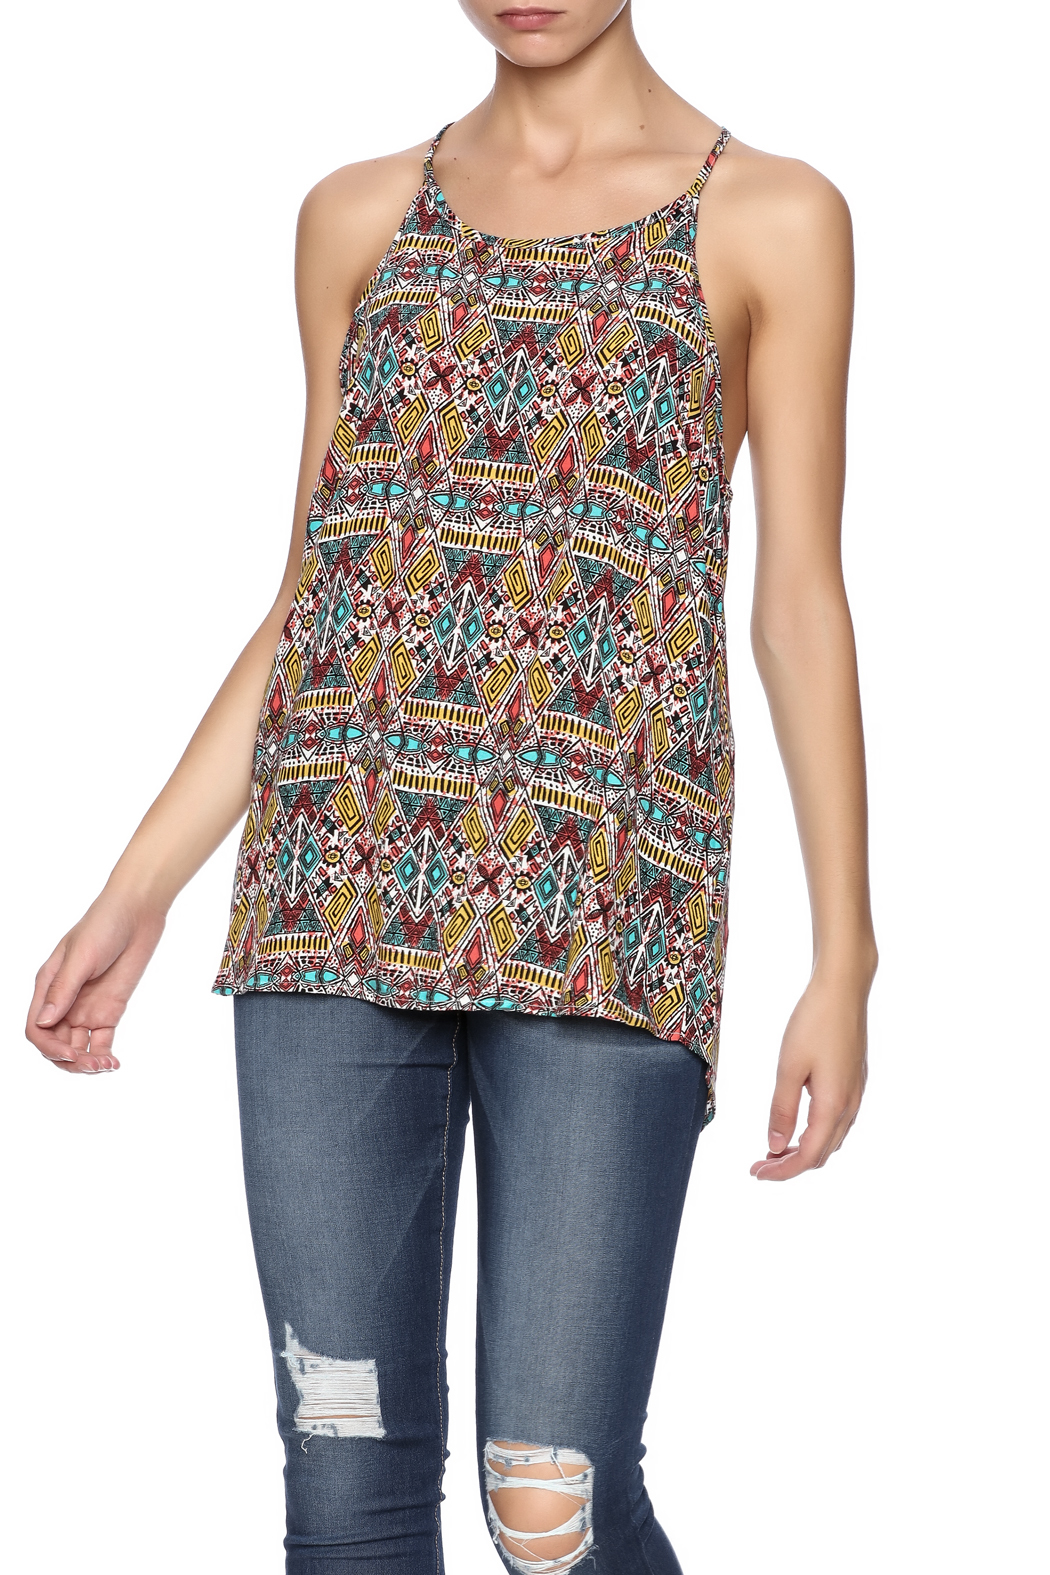 Ambiance Aztec Printed Tank - Front Cropped Image